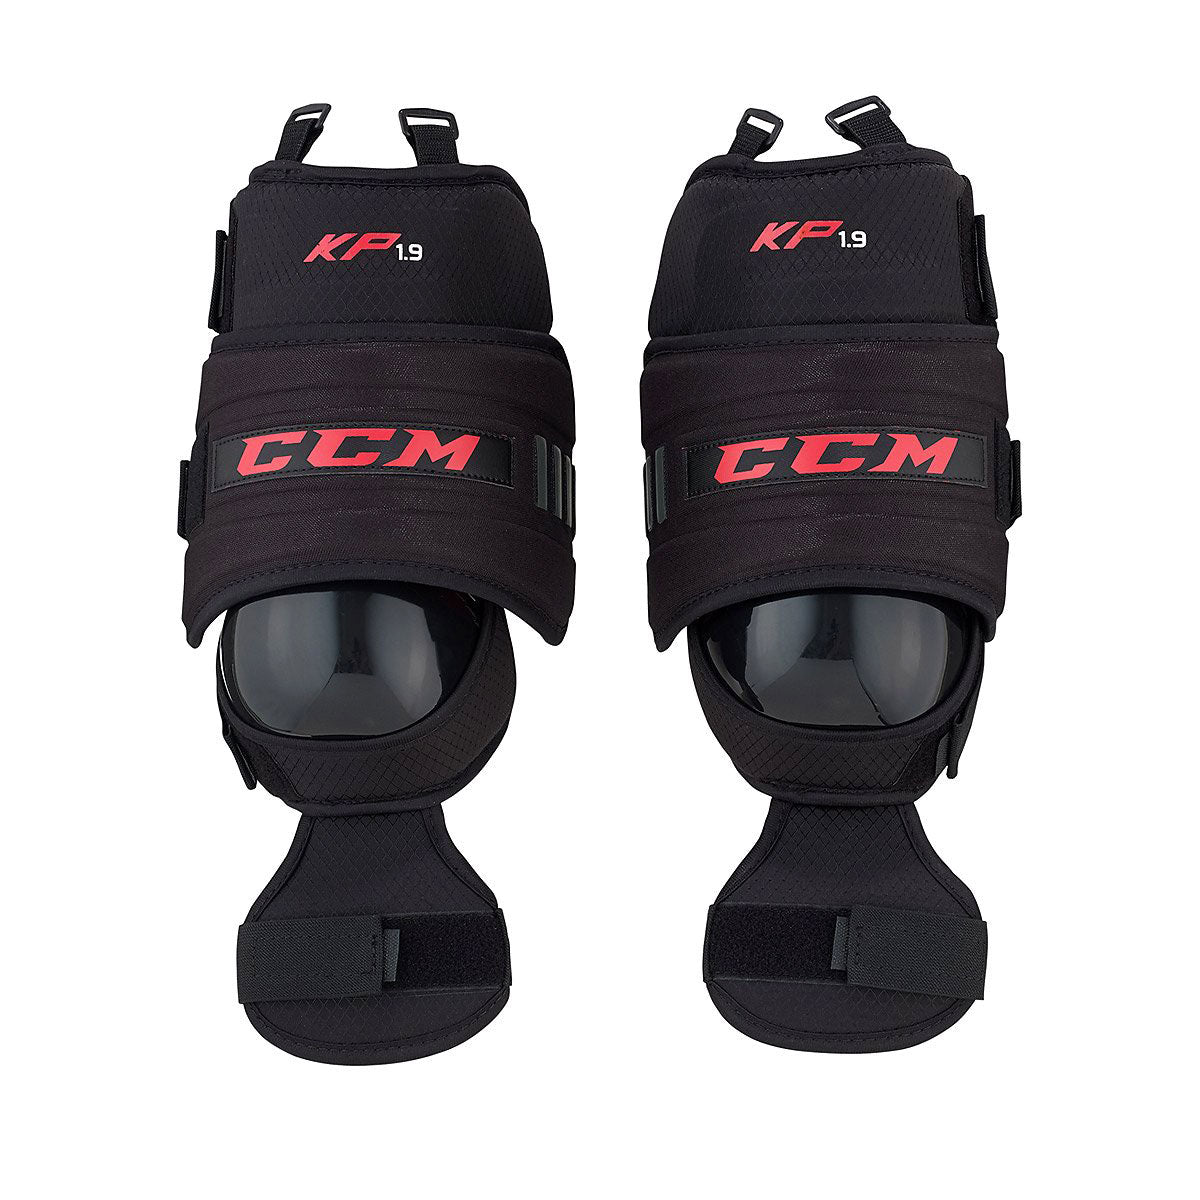 CCM 1.9 Intermediate Knee & Thigh Pads